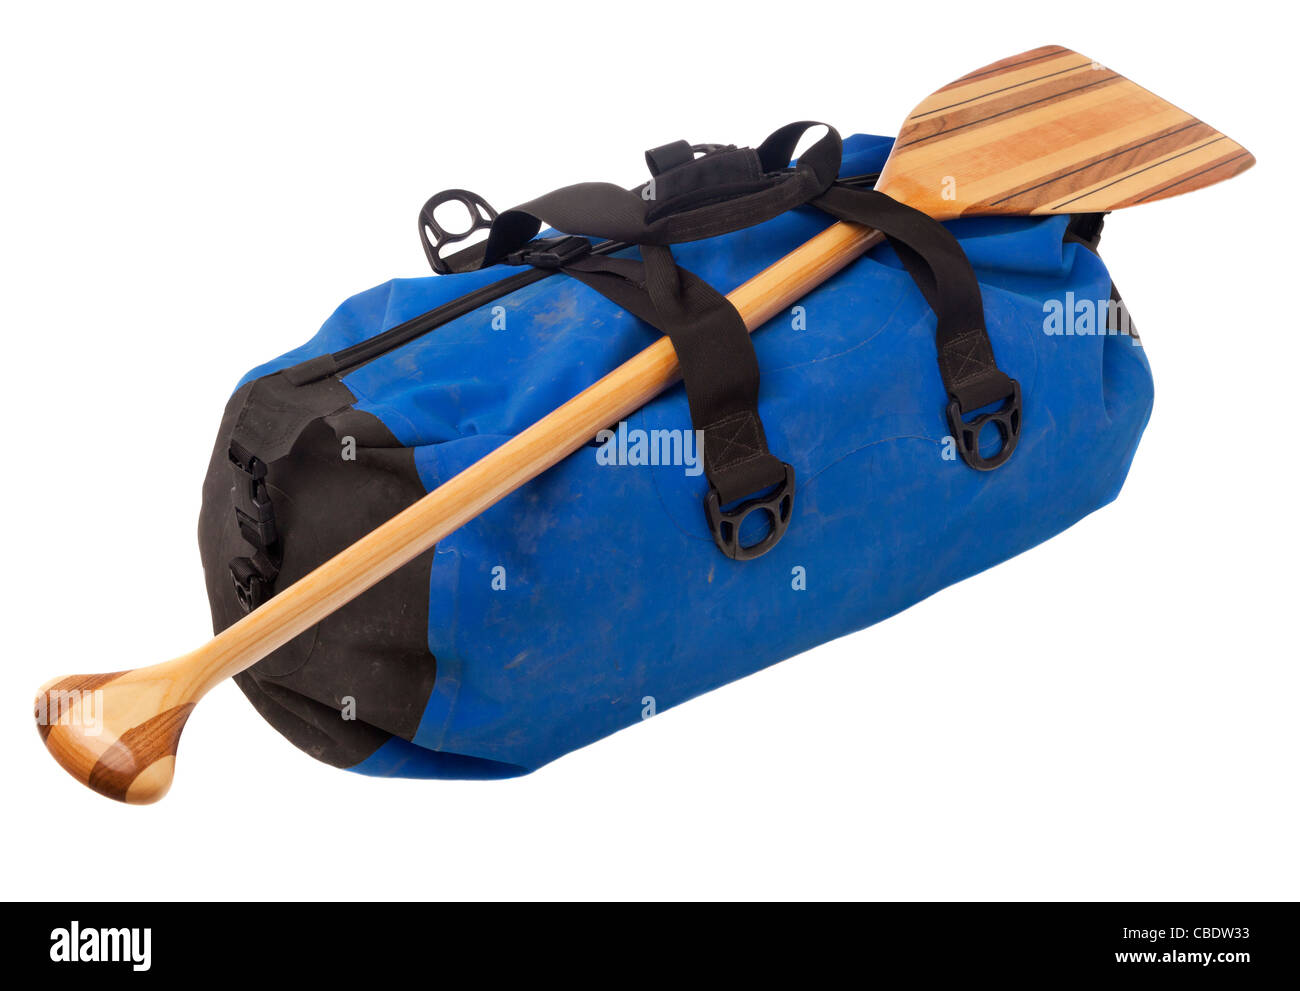 paddling trip or vacation concept - wooden canoe paddle and waterpoof duffel with river mud stains, isolated on - Stock Image